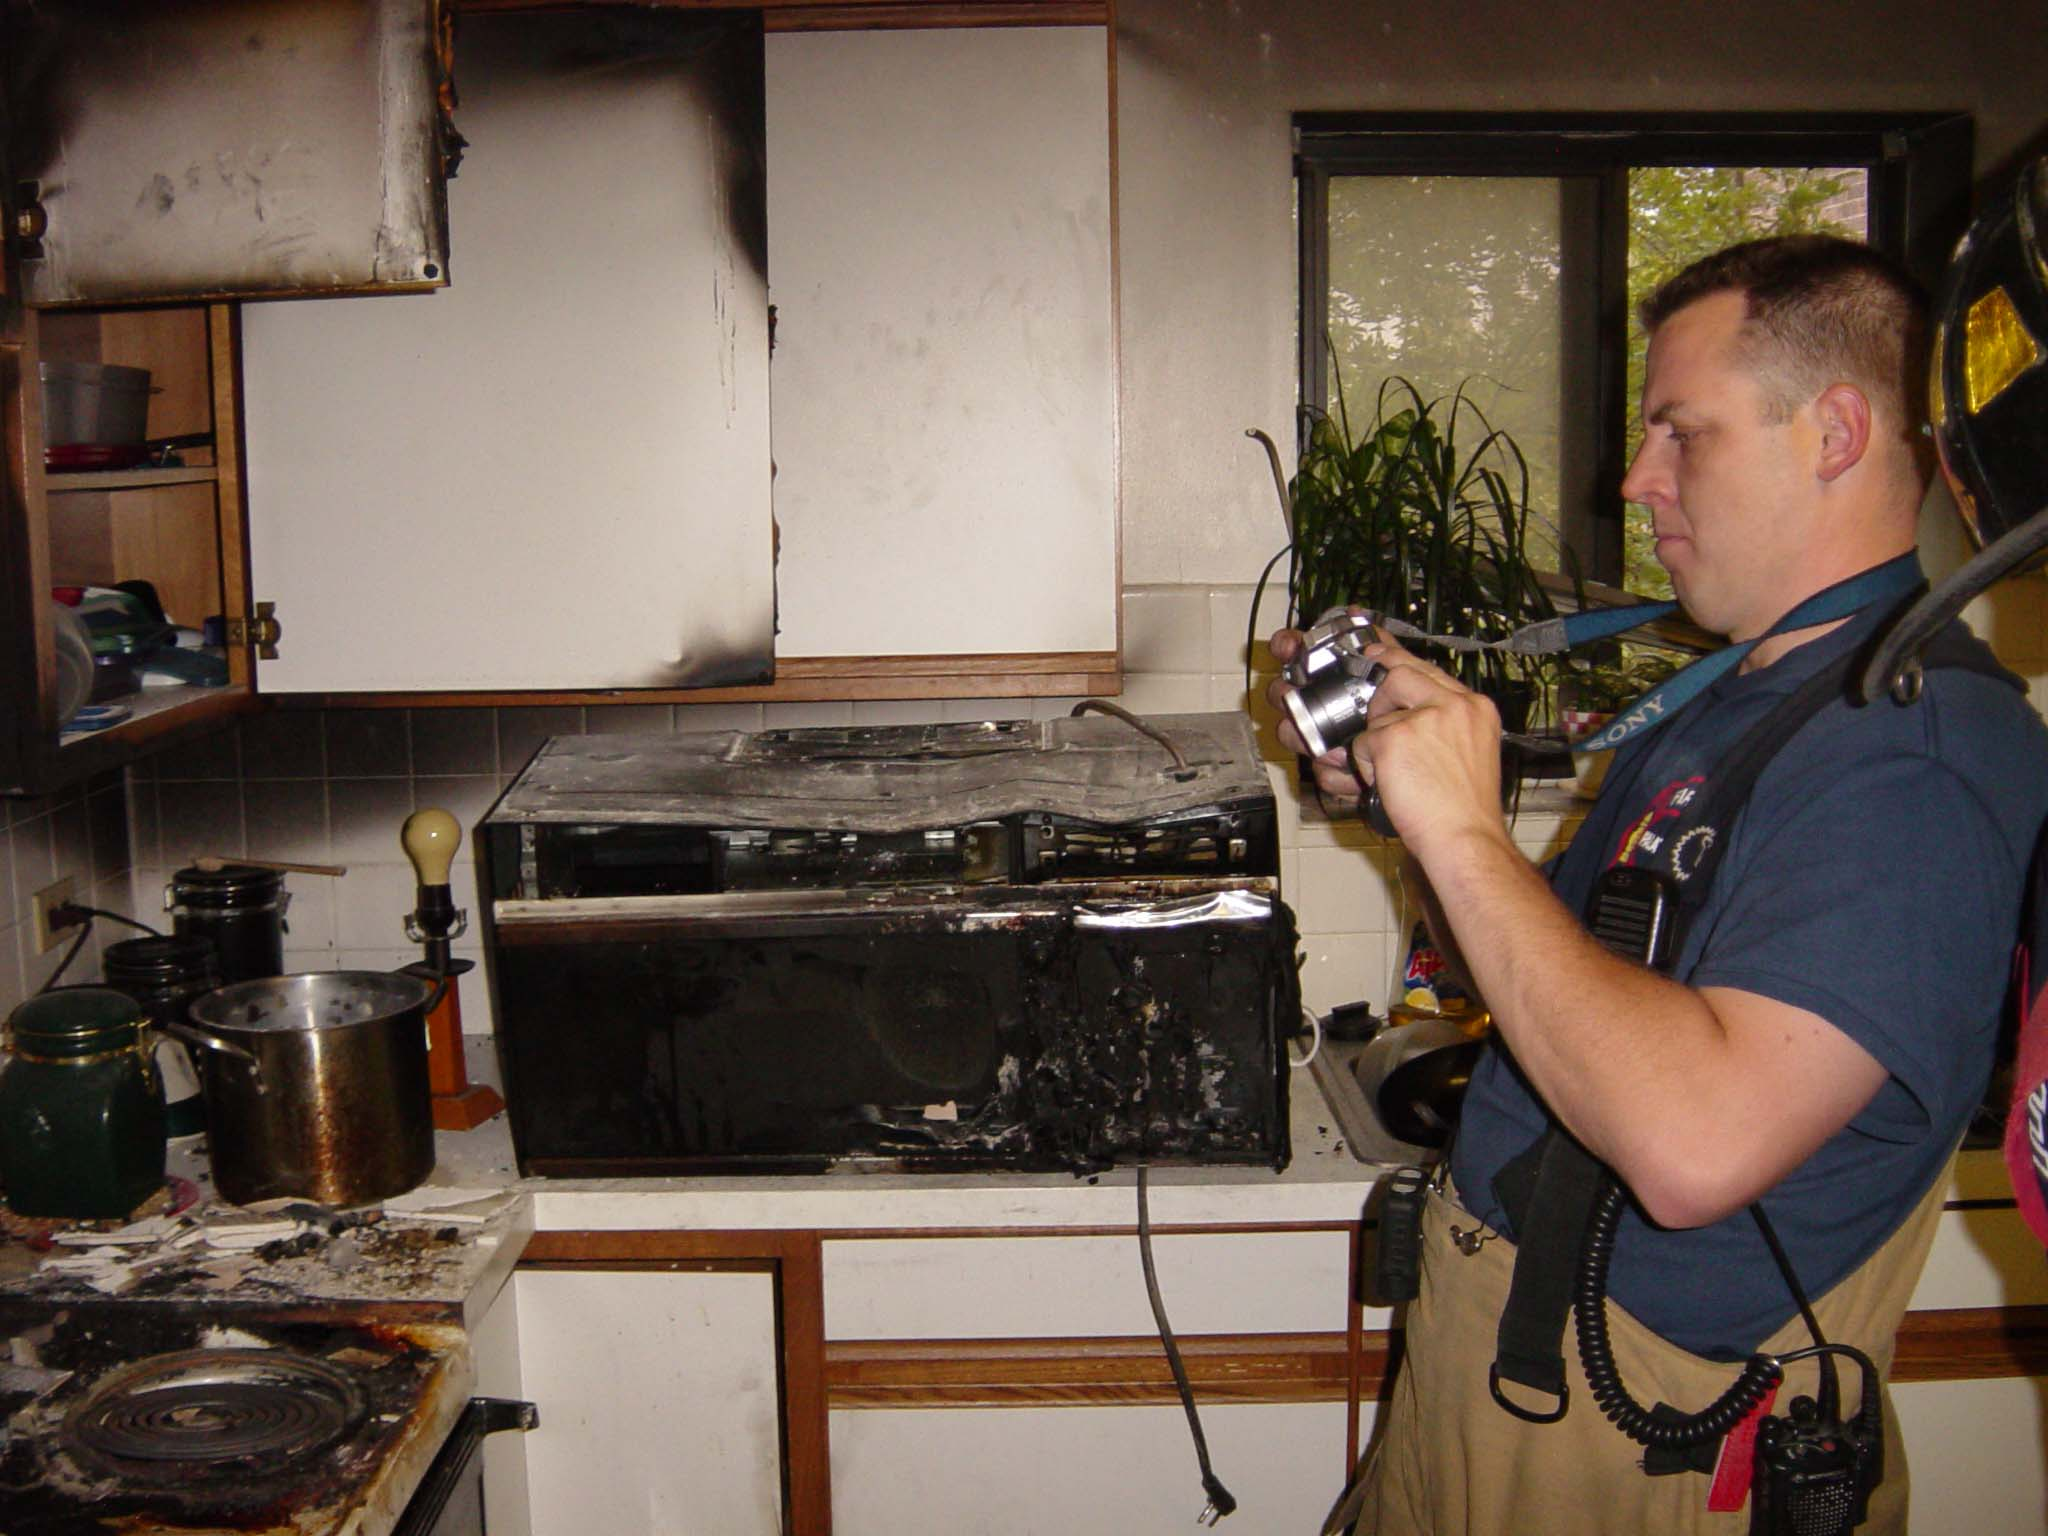 Investigator taking photos at a fire scene.